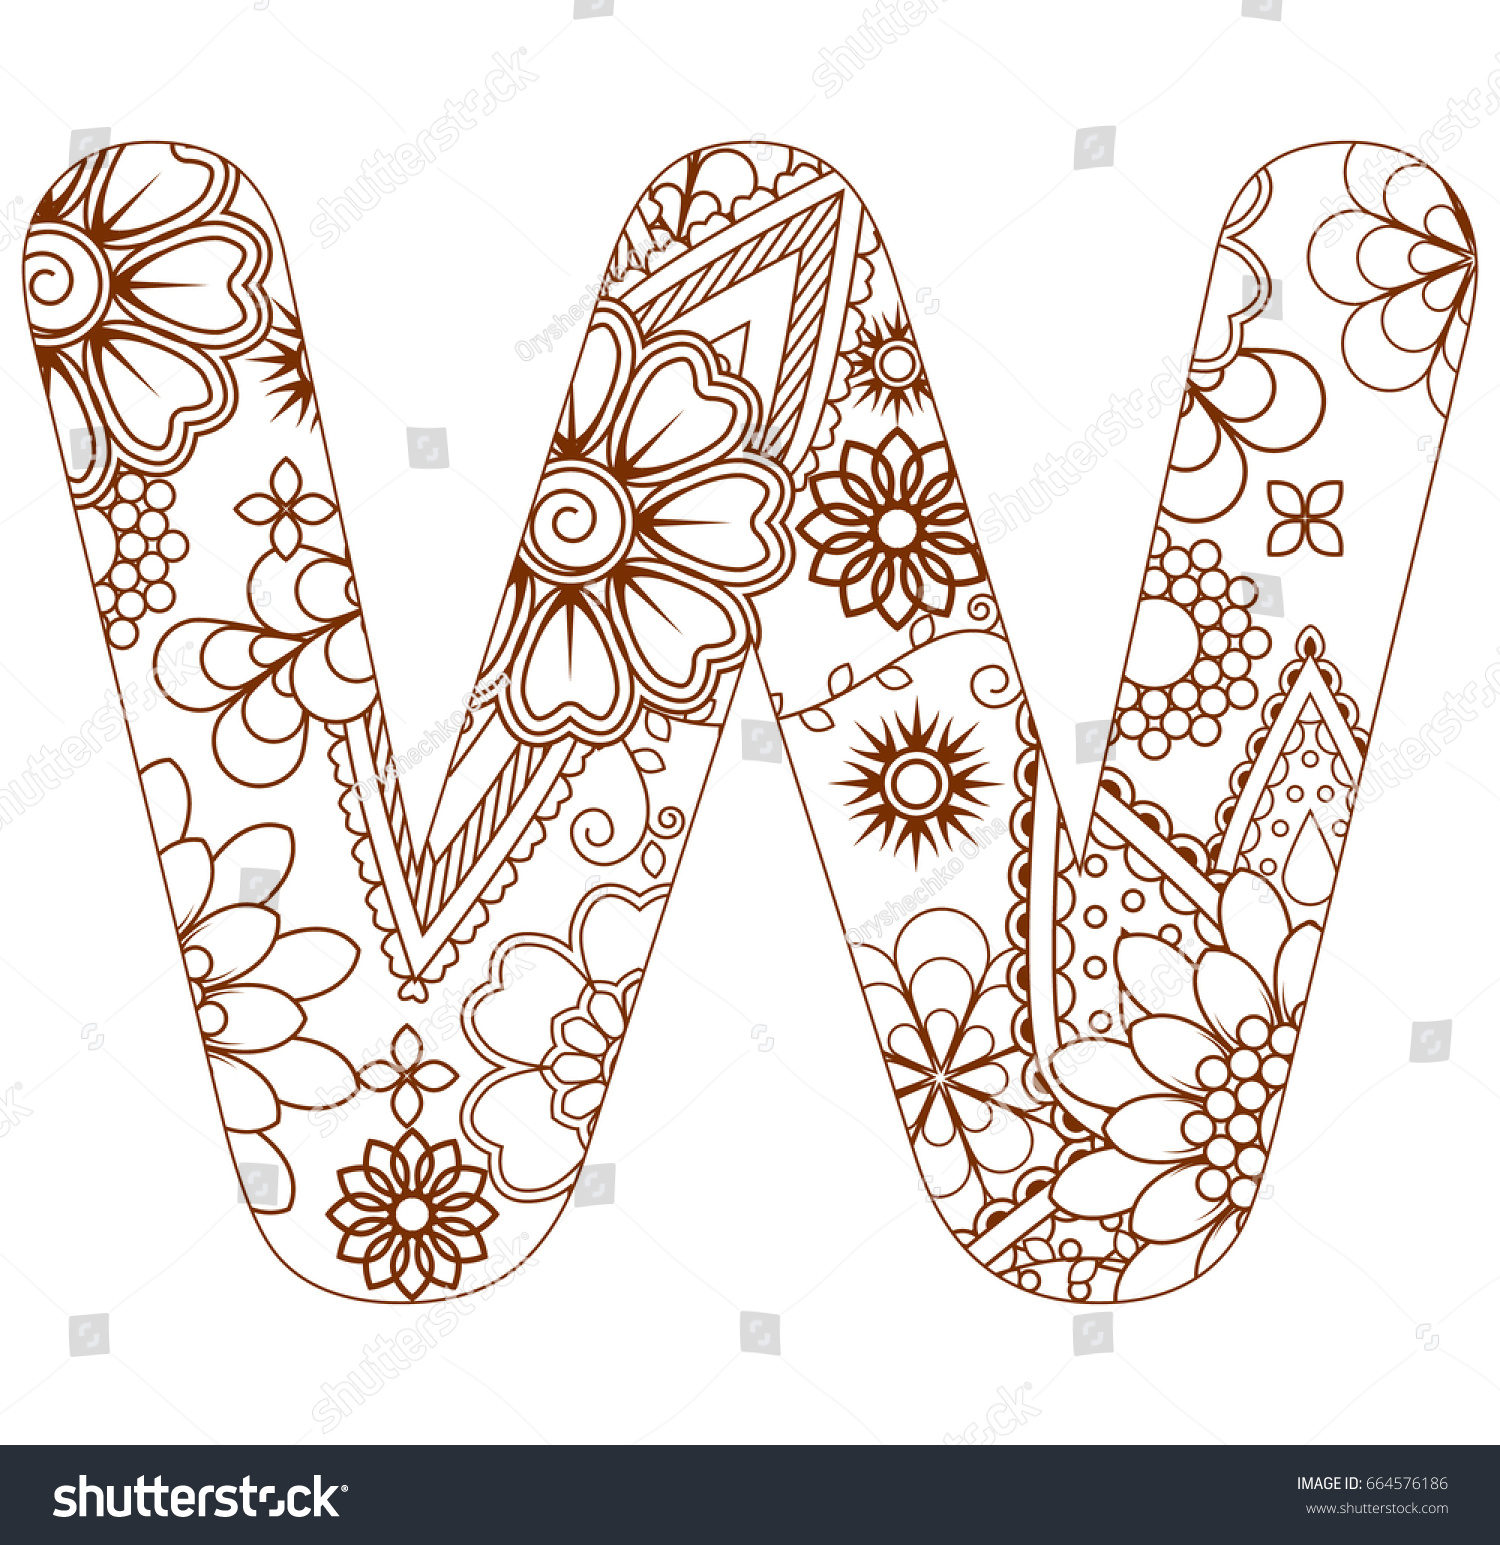 Adult Coloring Page Letter W Alphabet Stock Vector Royalty Free